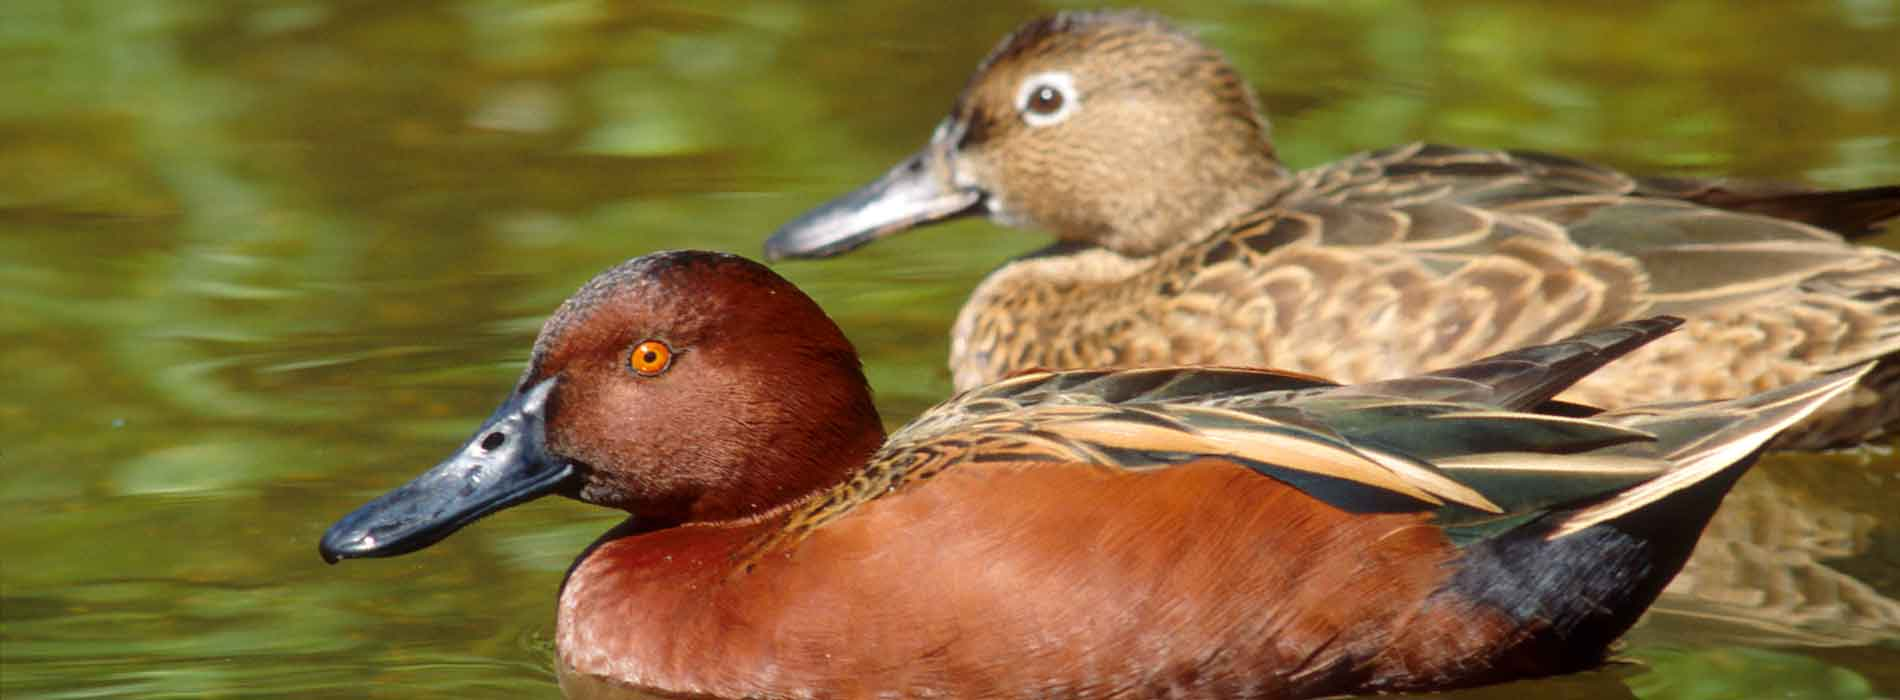 A cinnamon teal on the surface of the water with foliage in background